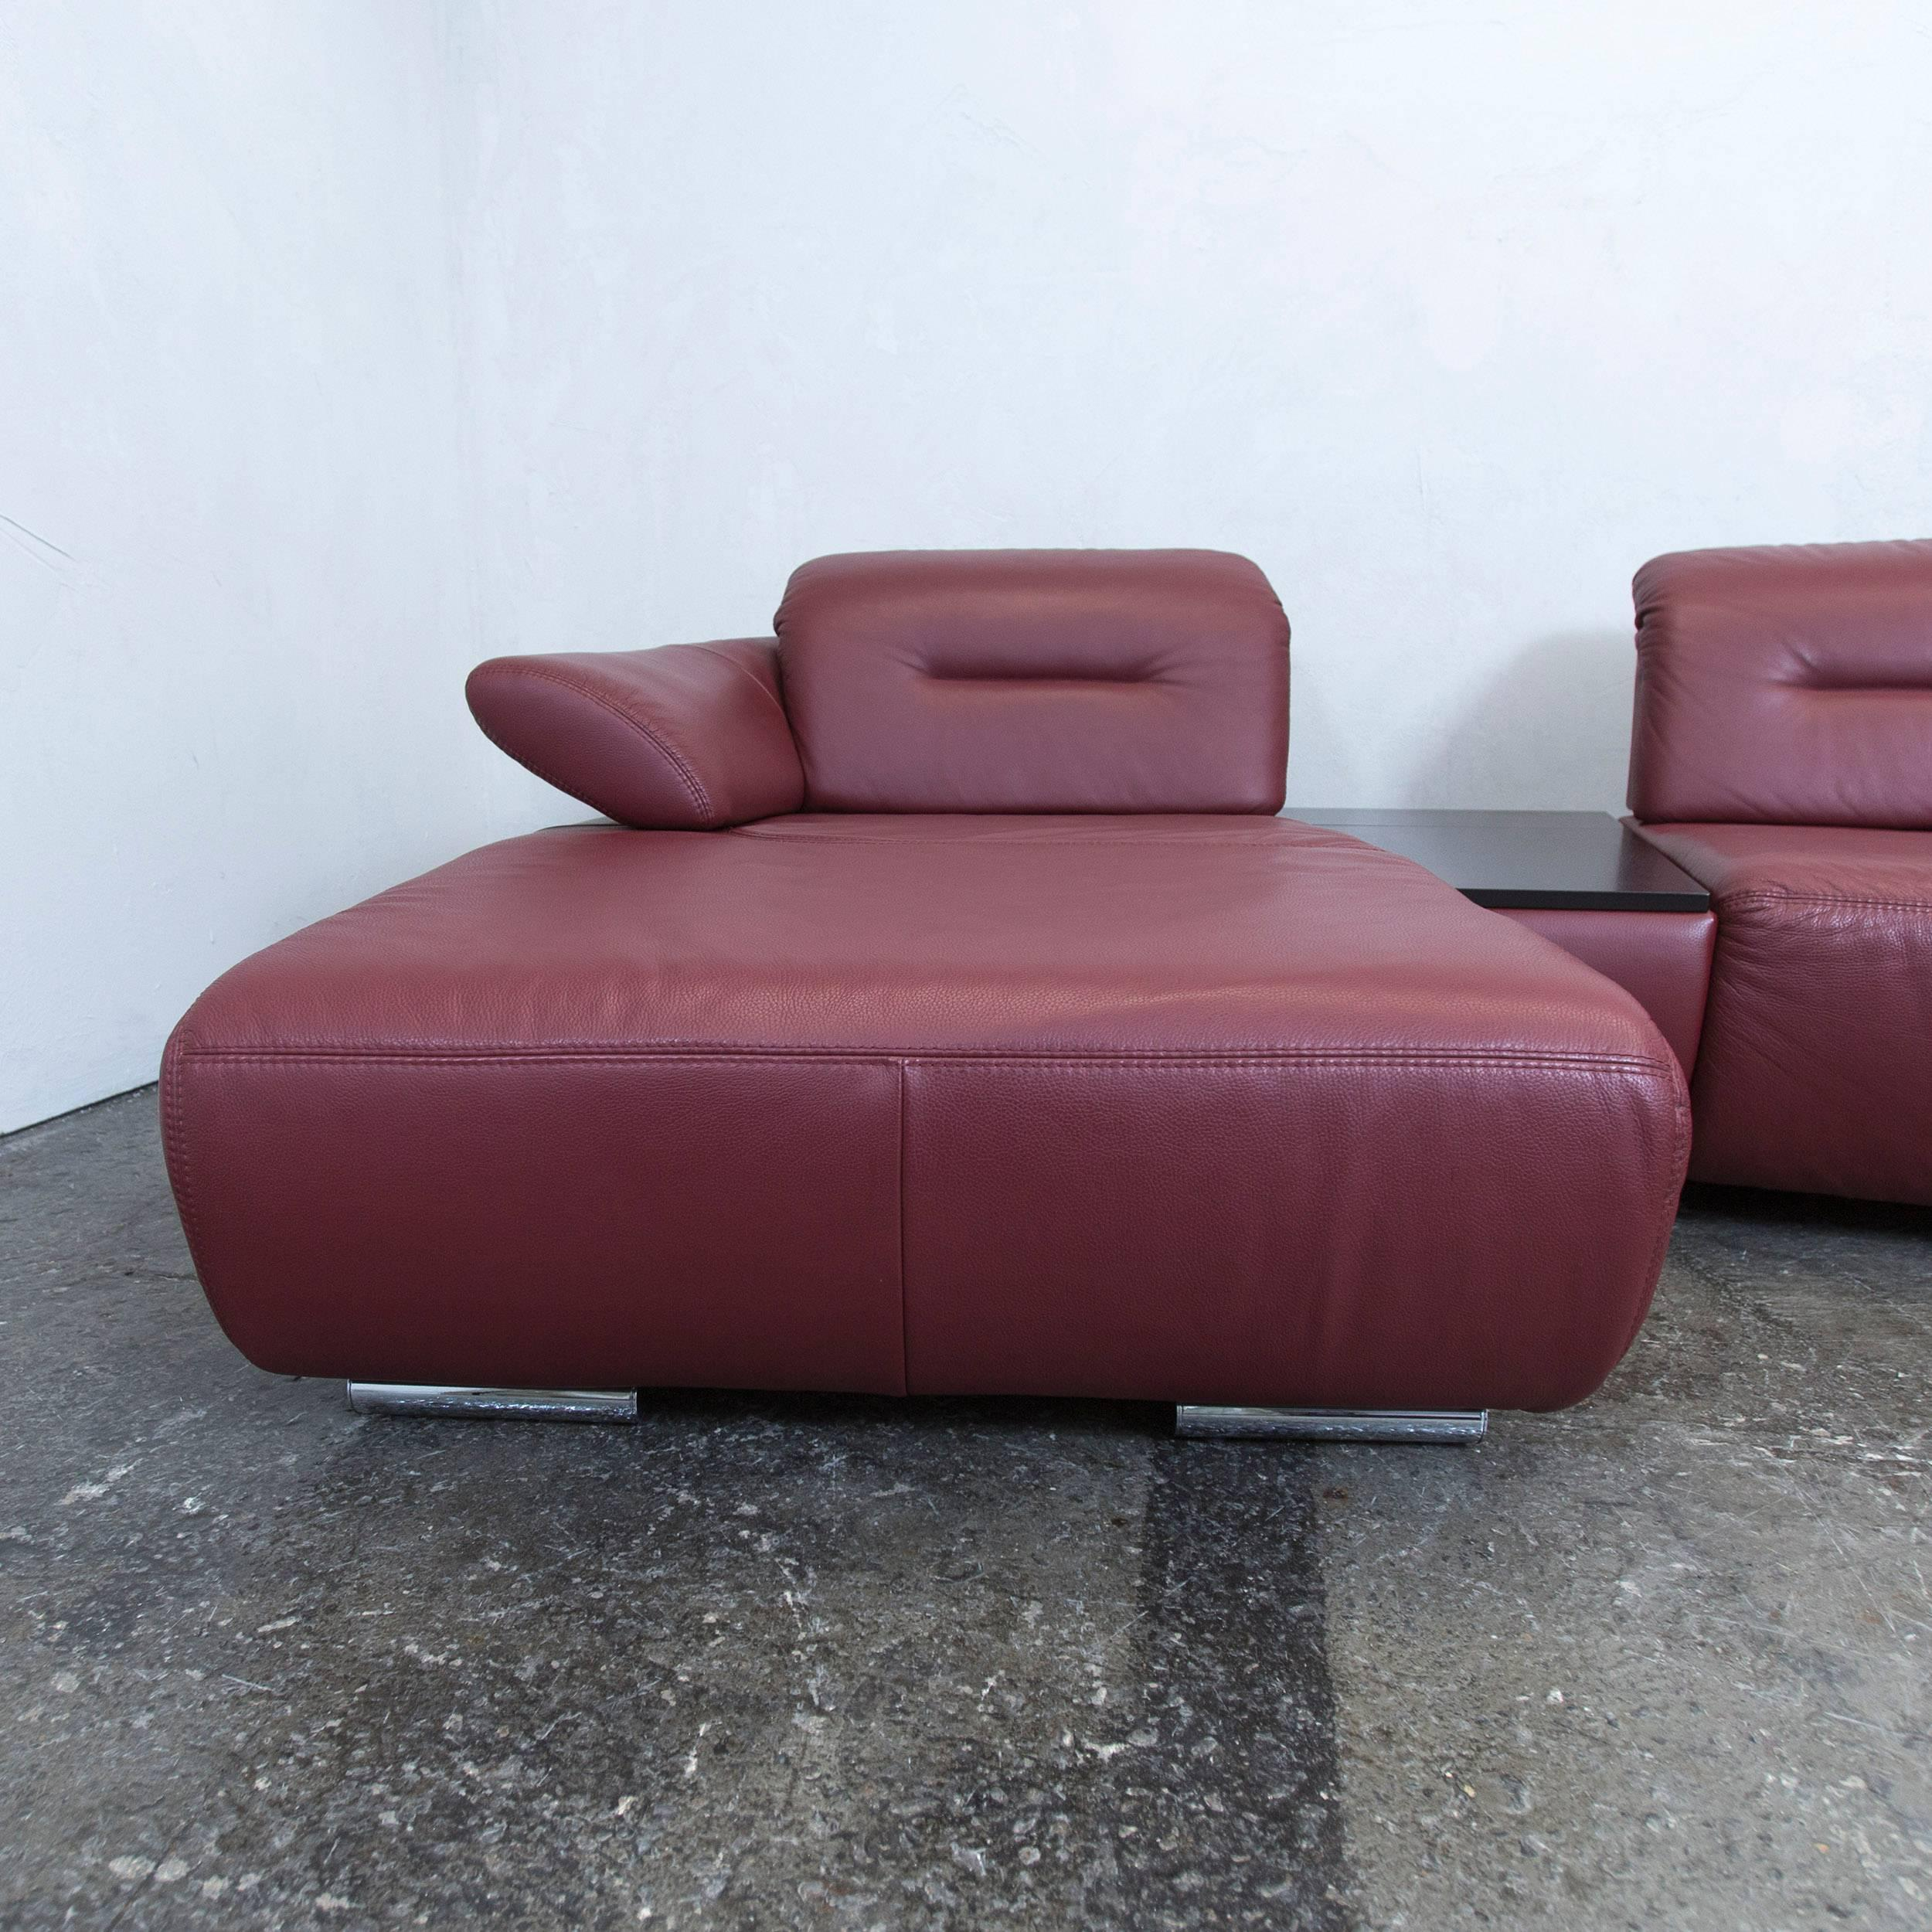 Chippendale Couchtisch Couch Rot Leder Best With Couch Rot With Couch Rot Leder Koinor